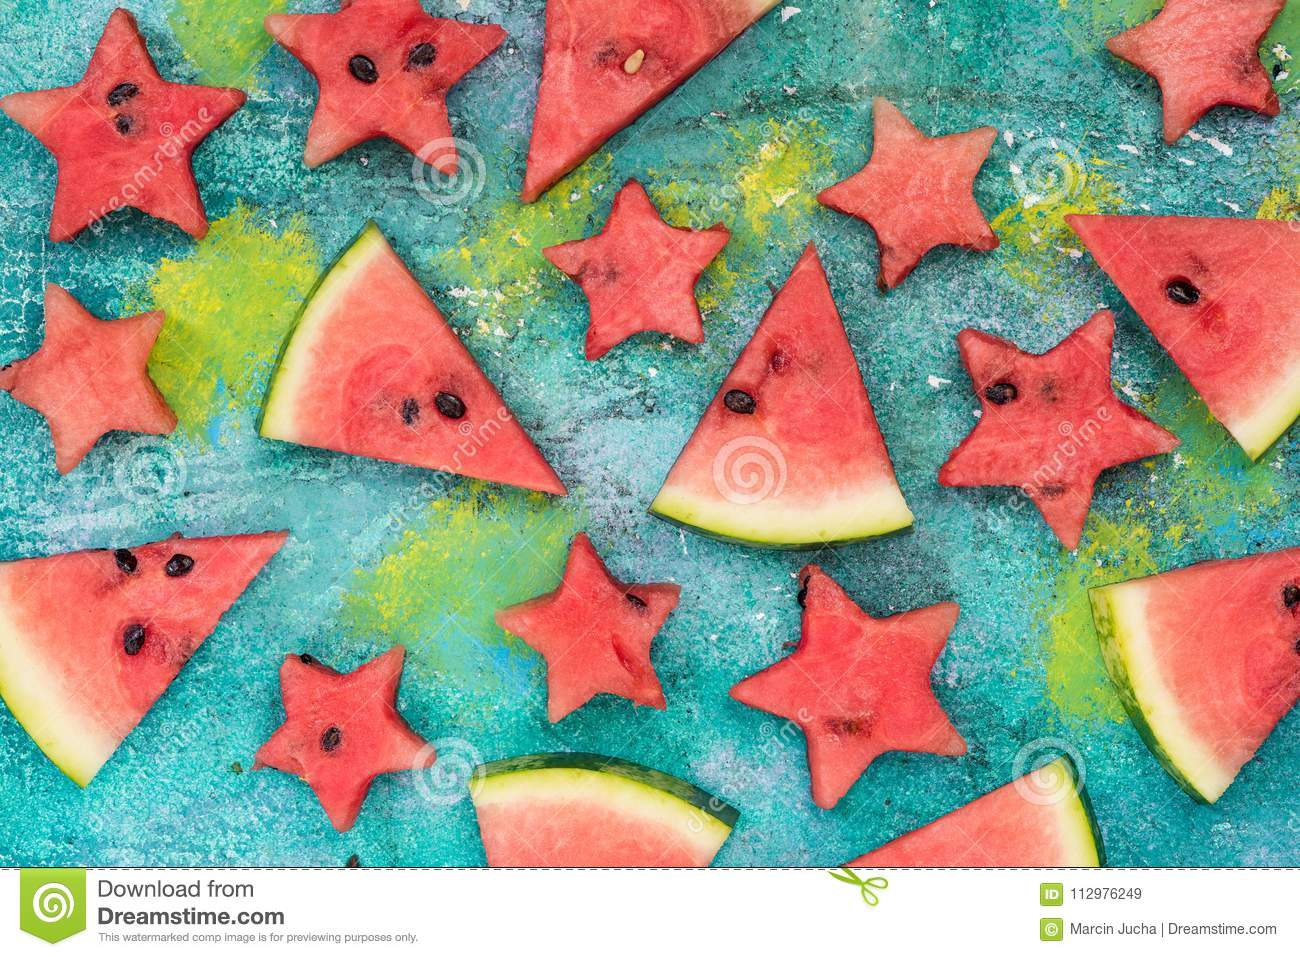 Watermelon slices and stars, garden party food